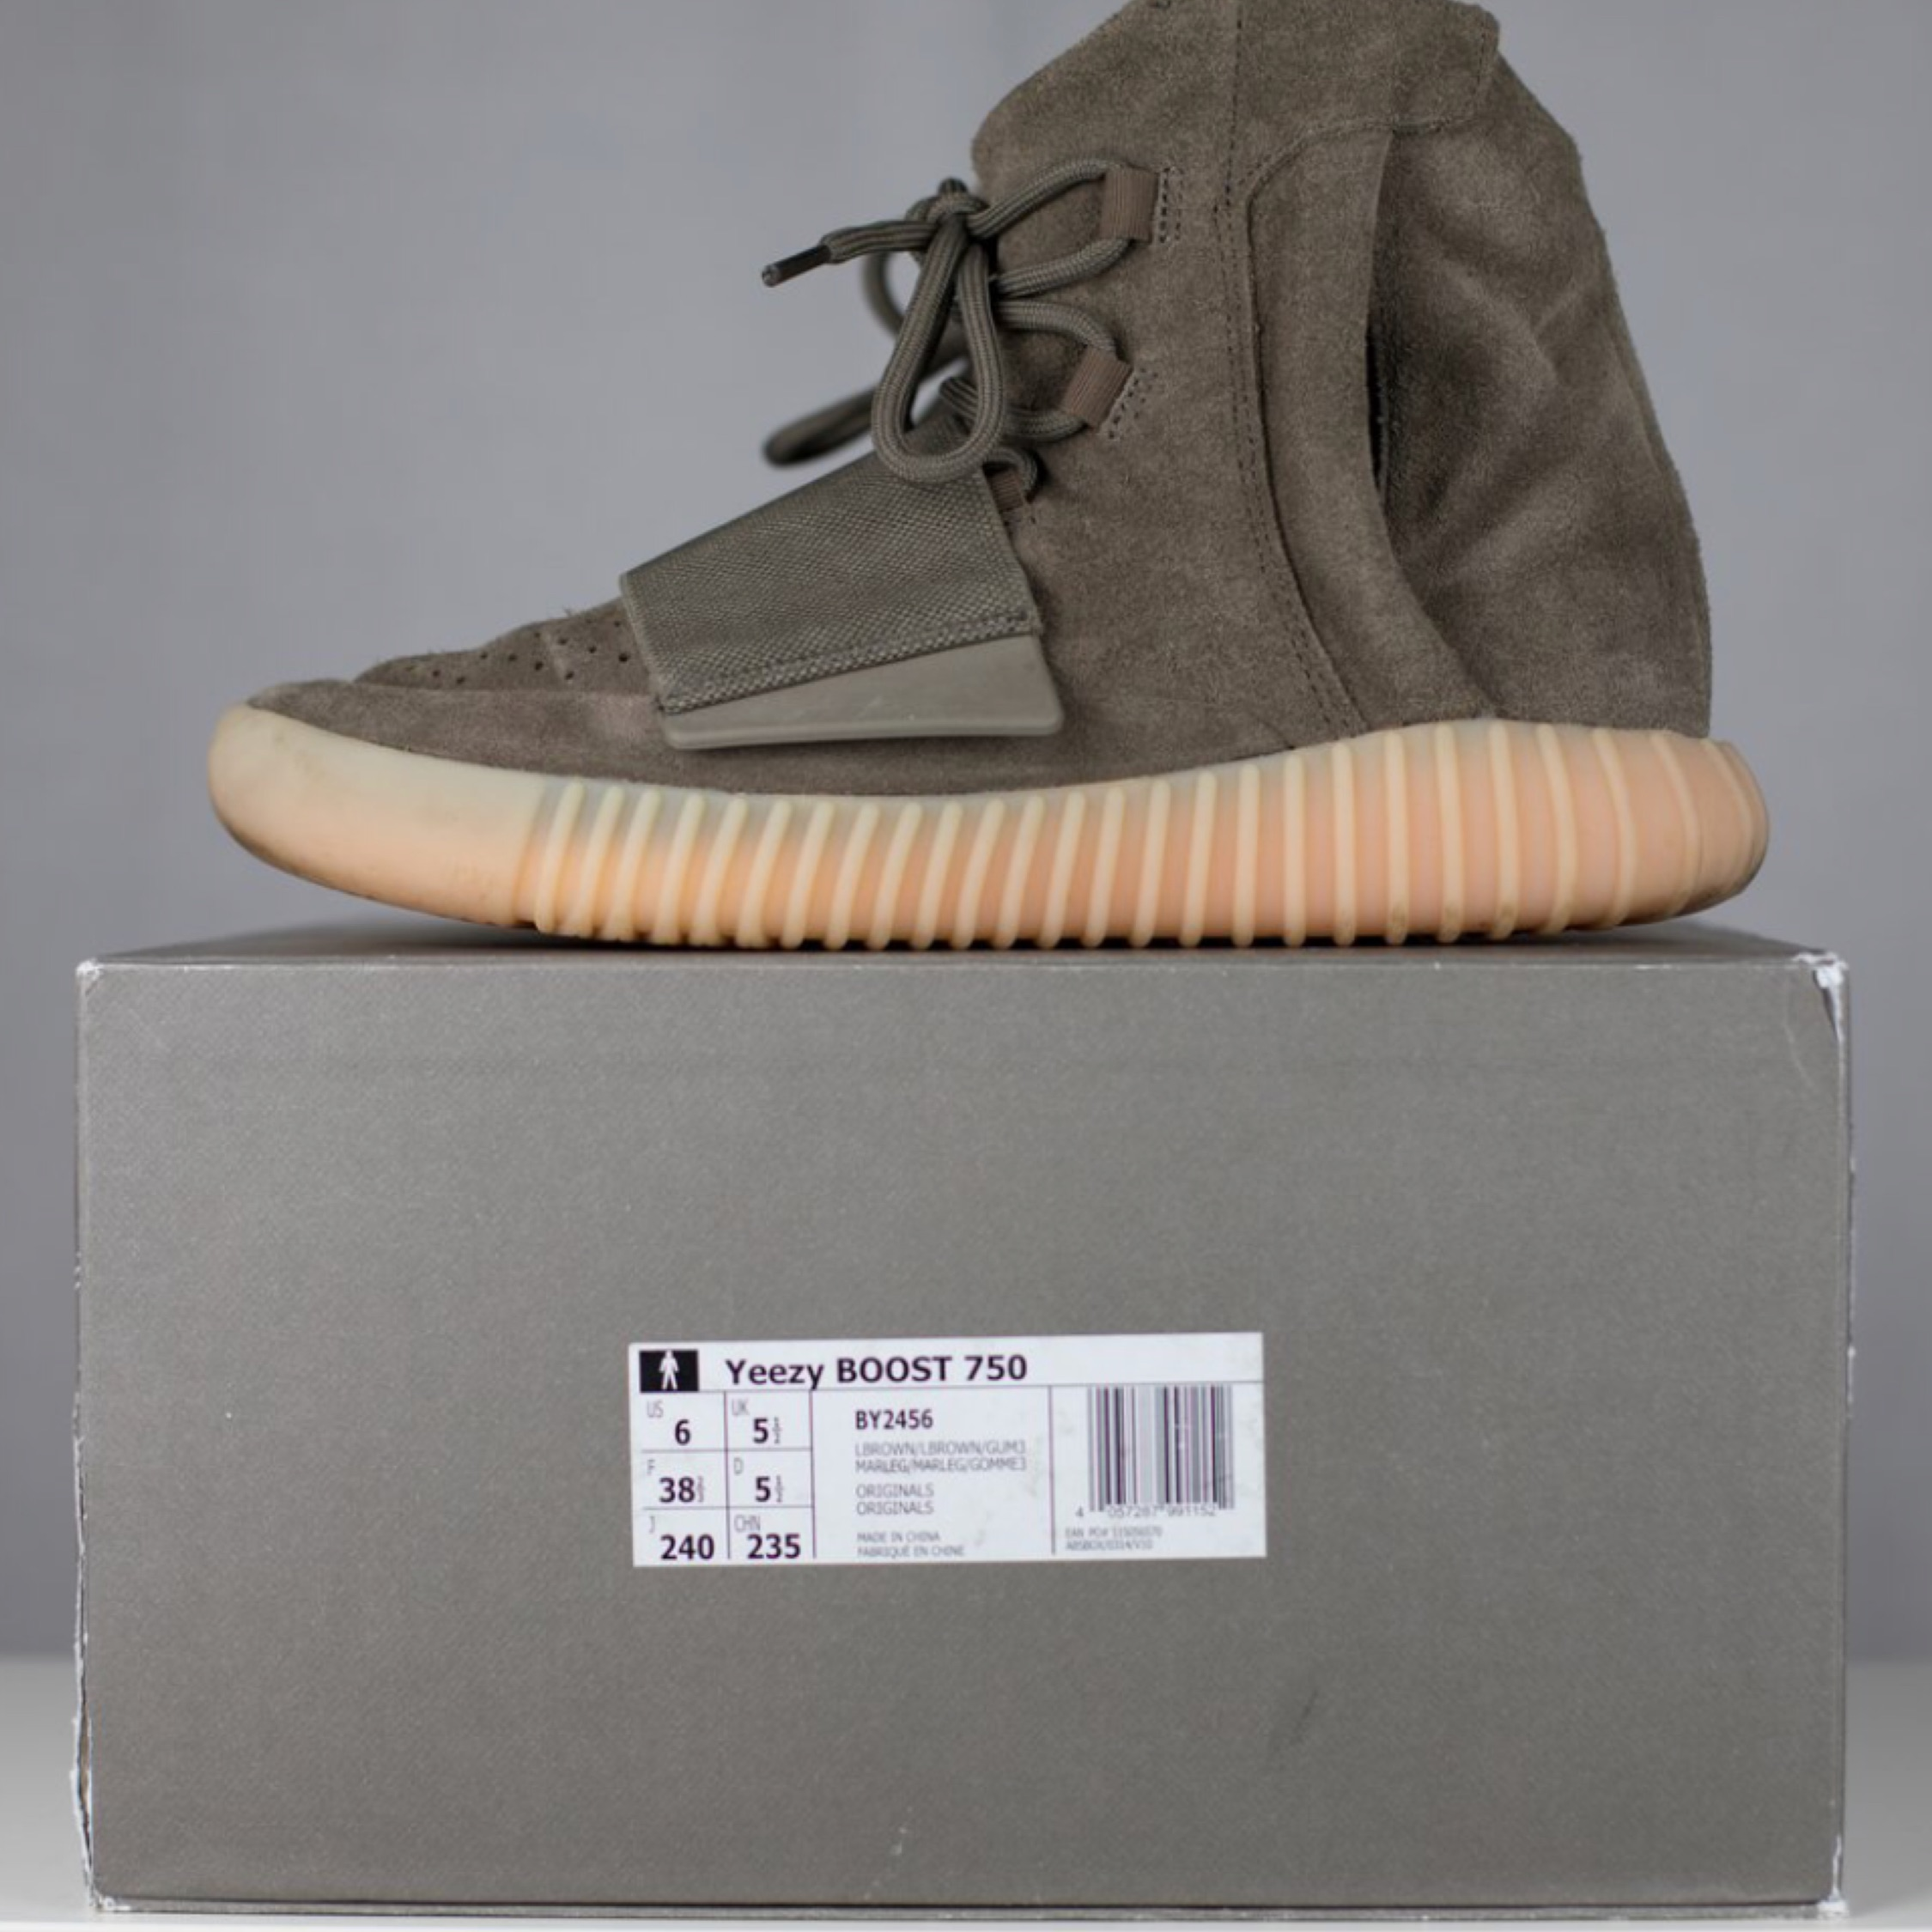 separation shoes fb8c5 e5705 US 10.5. €4. Adidas Yeezy 750 Boost Grey Chocolate